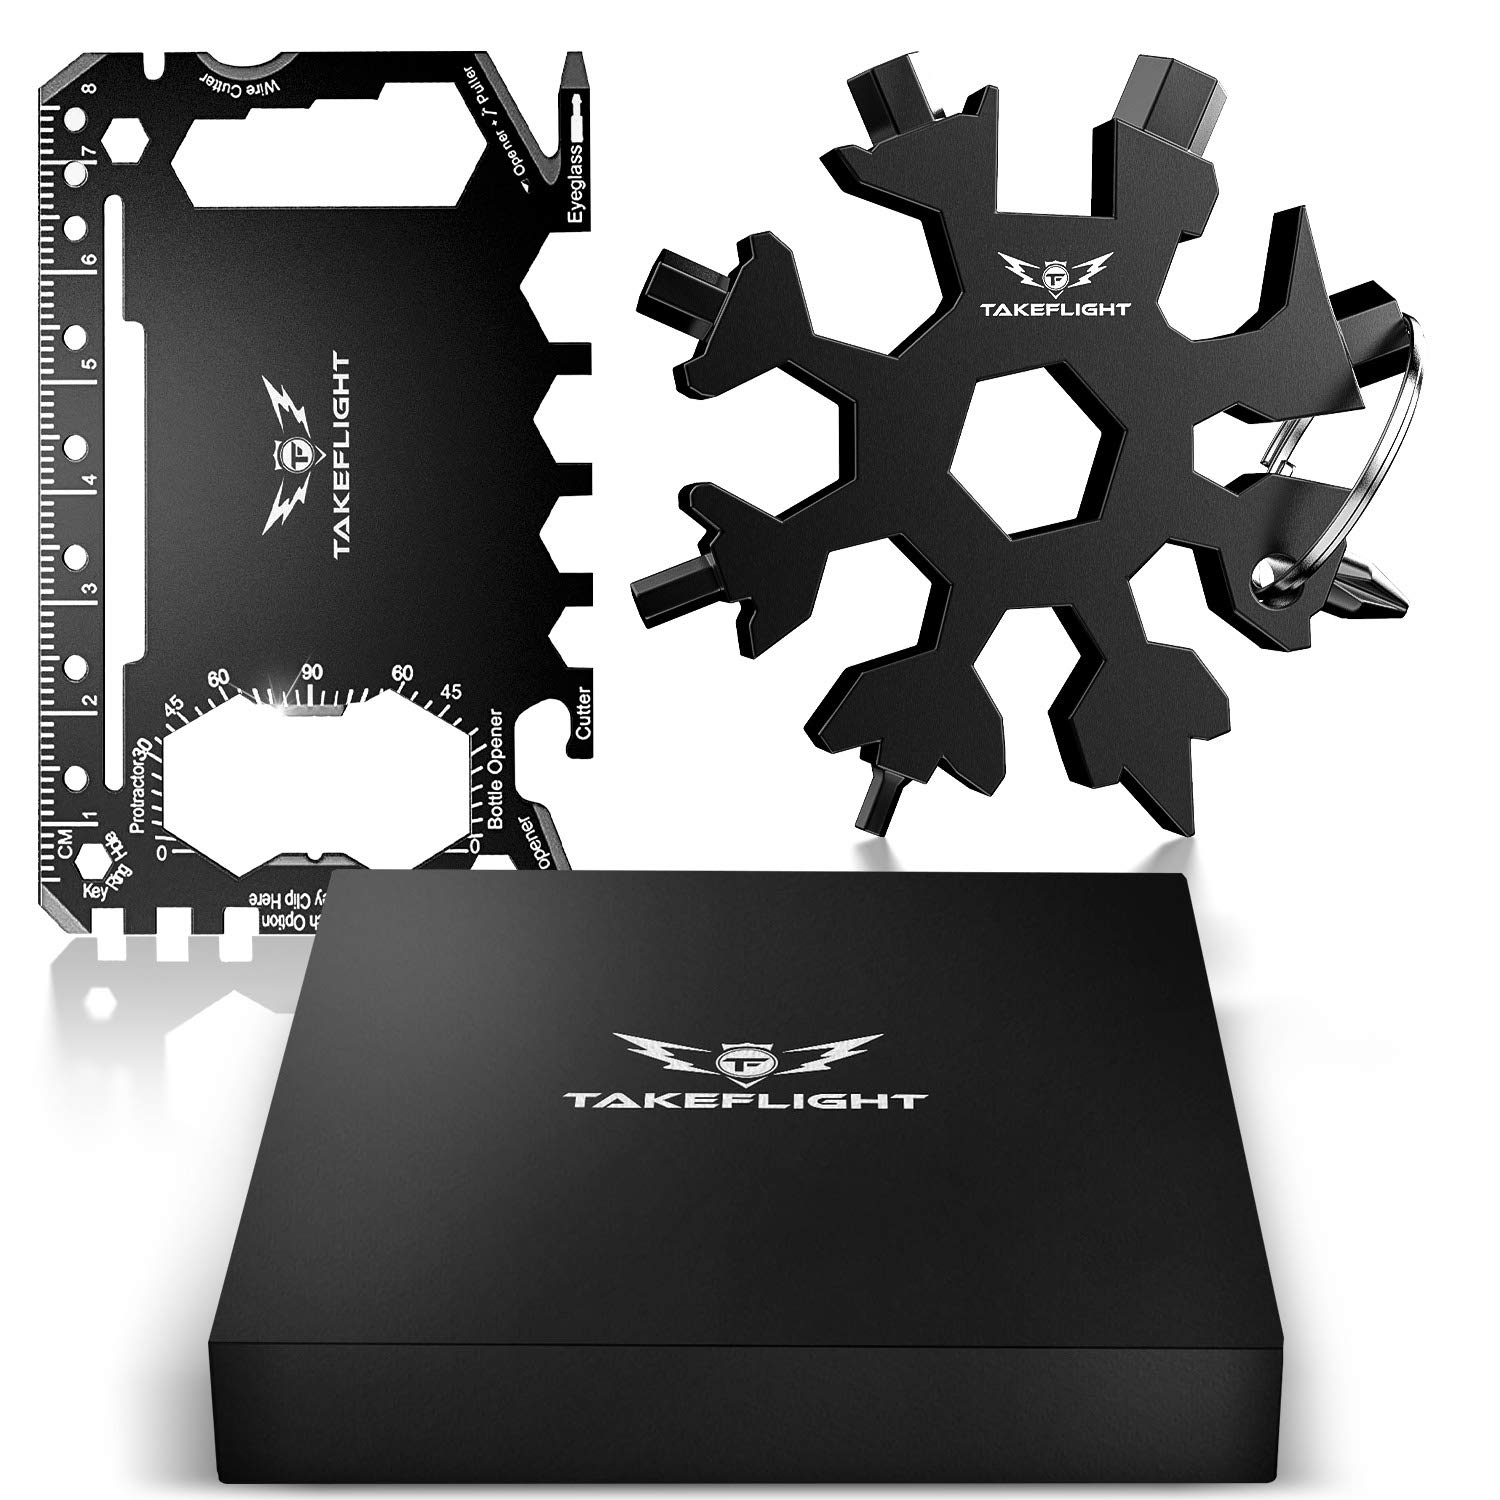 EDC Credit Card Tool Gift Set - Tactical Pocket Tool Gadgets for Men | Screwdriver Snowflake Multi Tool - Wallet Multitool Giftset with Pocket Survival Tools - Survival Gear Accessories in Gift Box